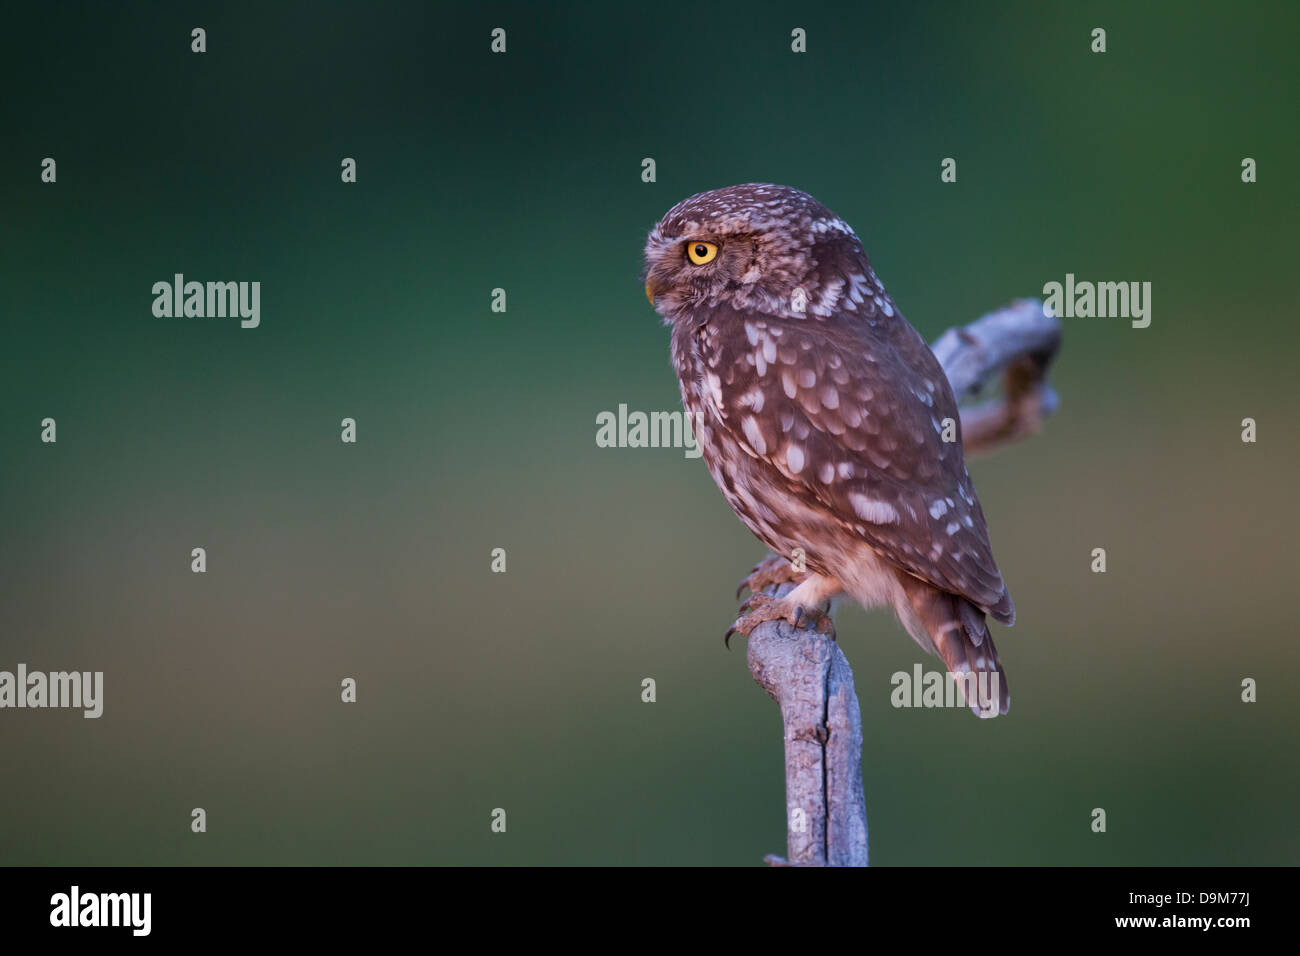 Little owl Athene noctua, adult, perched on branch, Pusztaszer, Hungary in June. - Stock Image